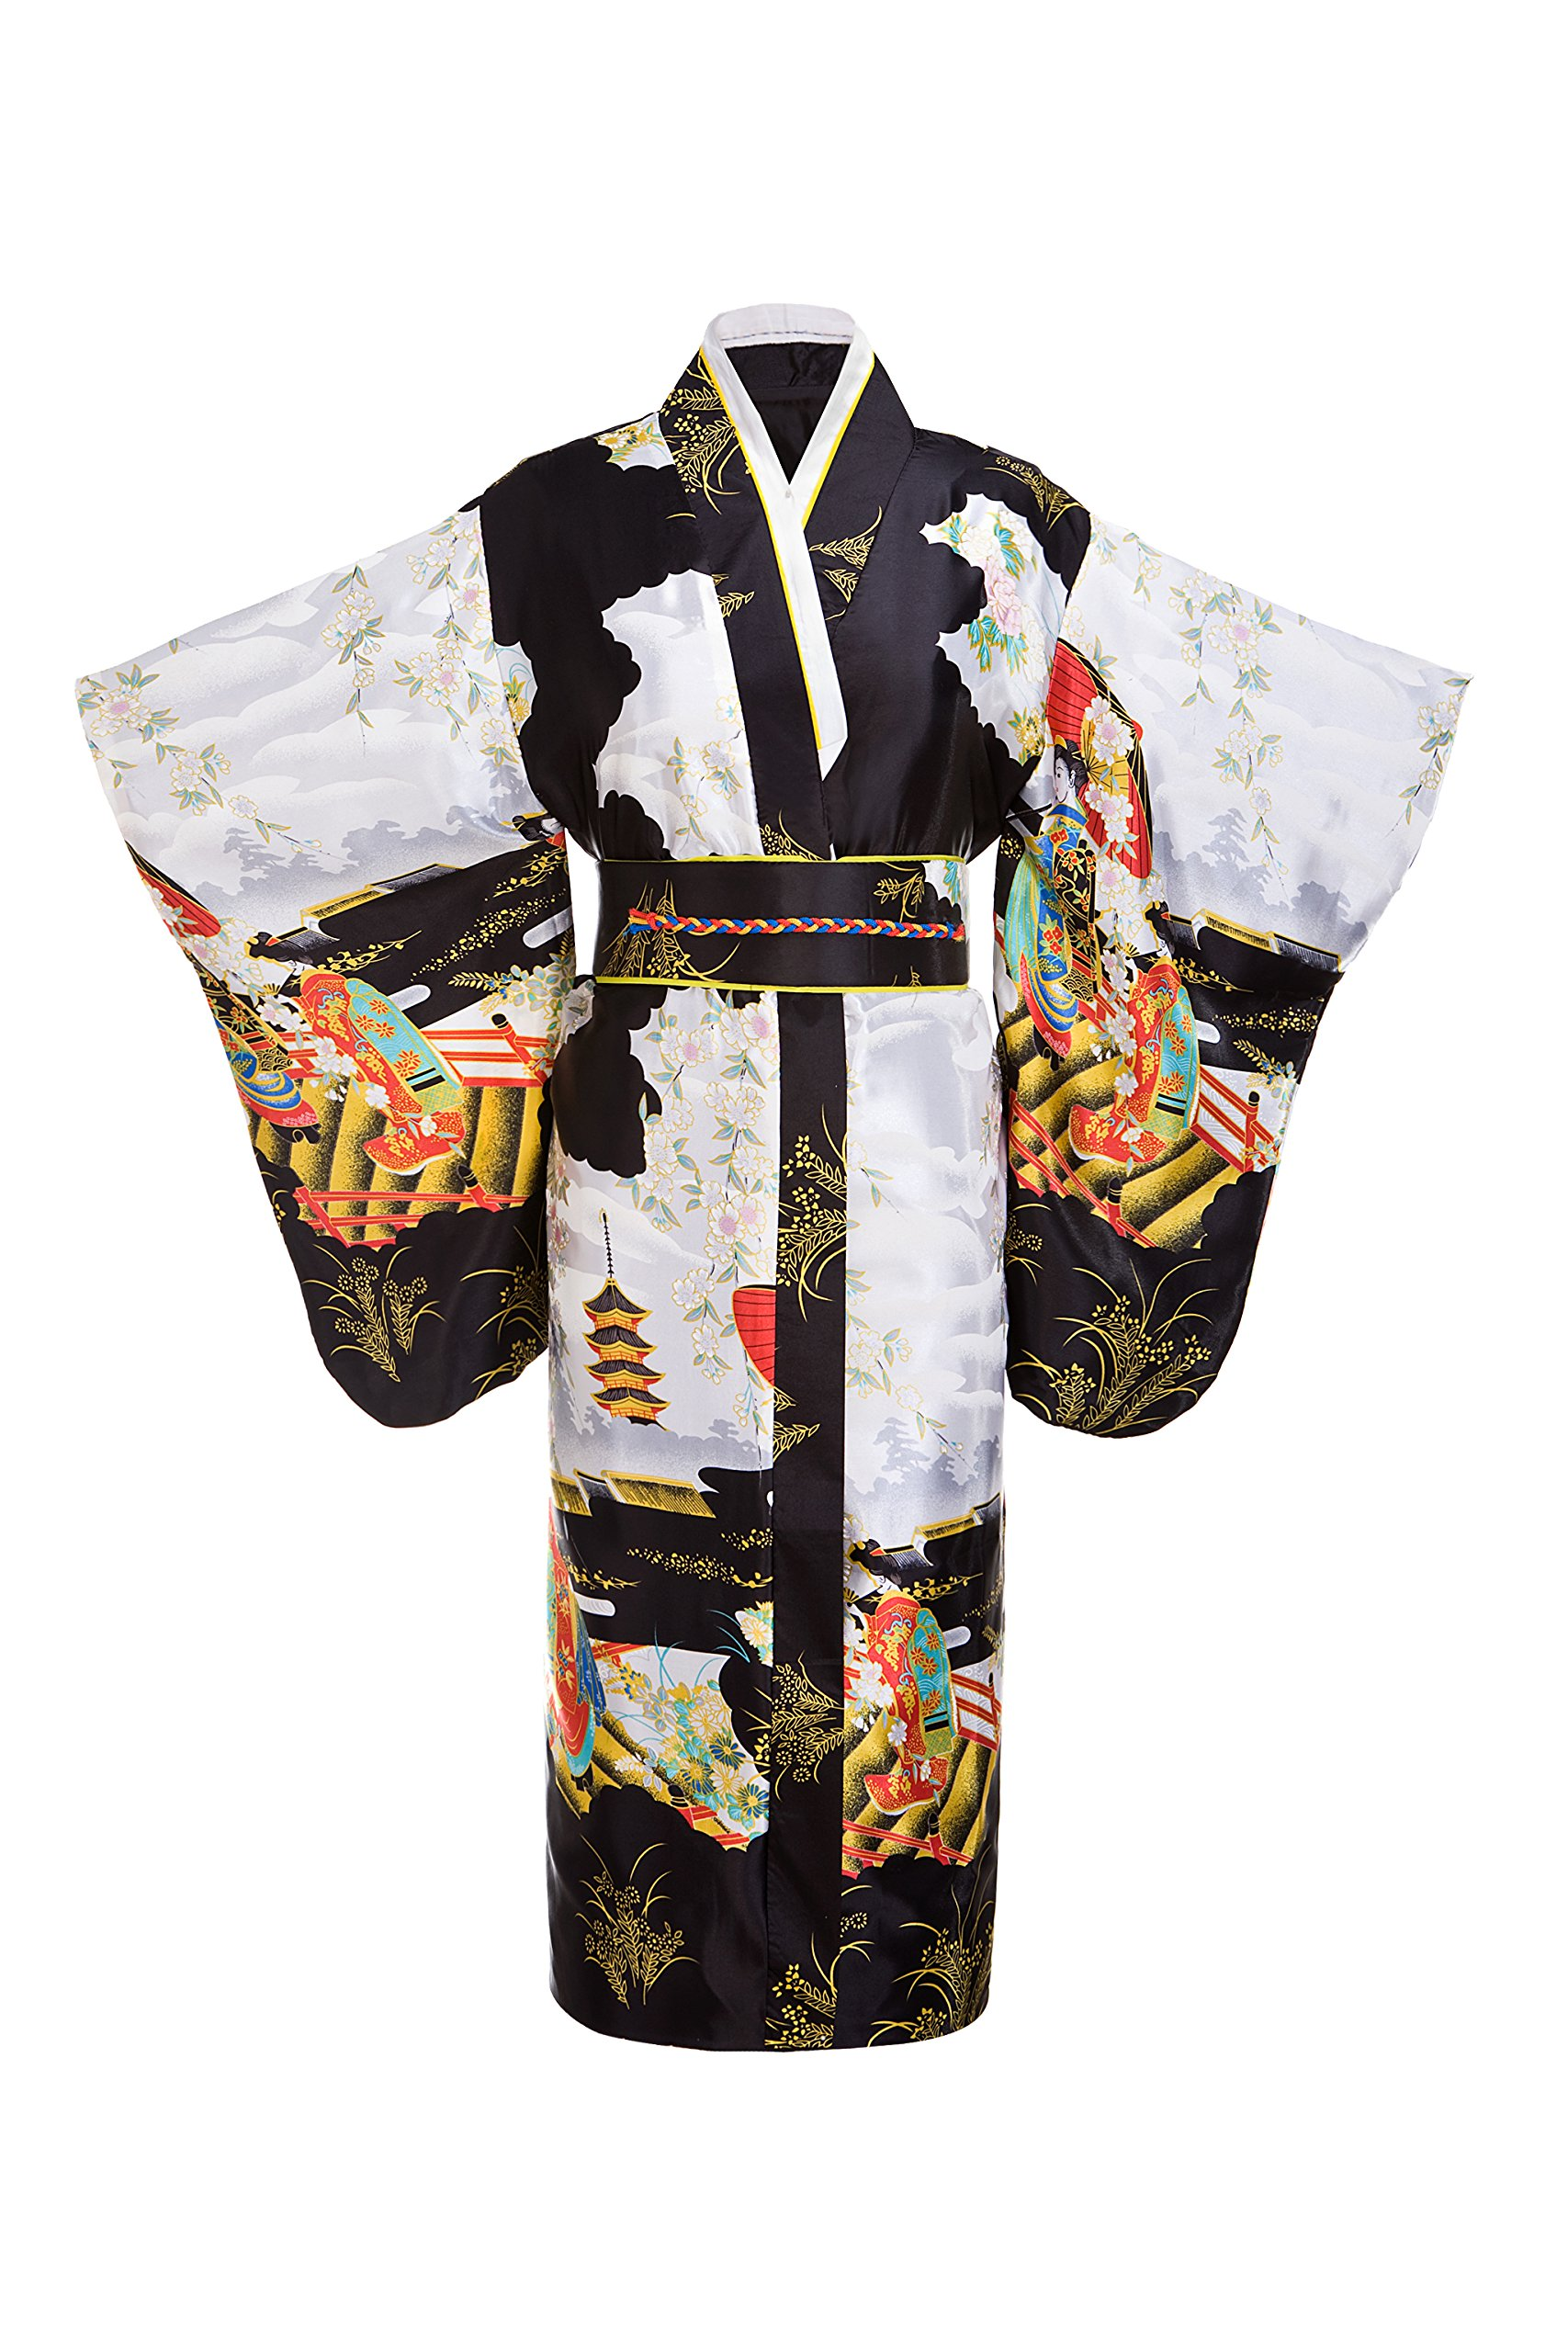 Joy Bridalc Yukata Women's Gorgeous Japanese Traditional Geisha Kimono Robe, Black